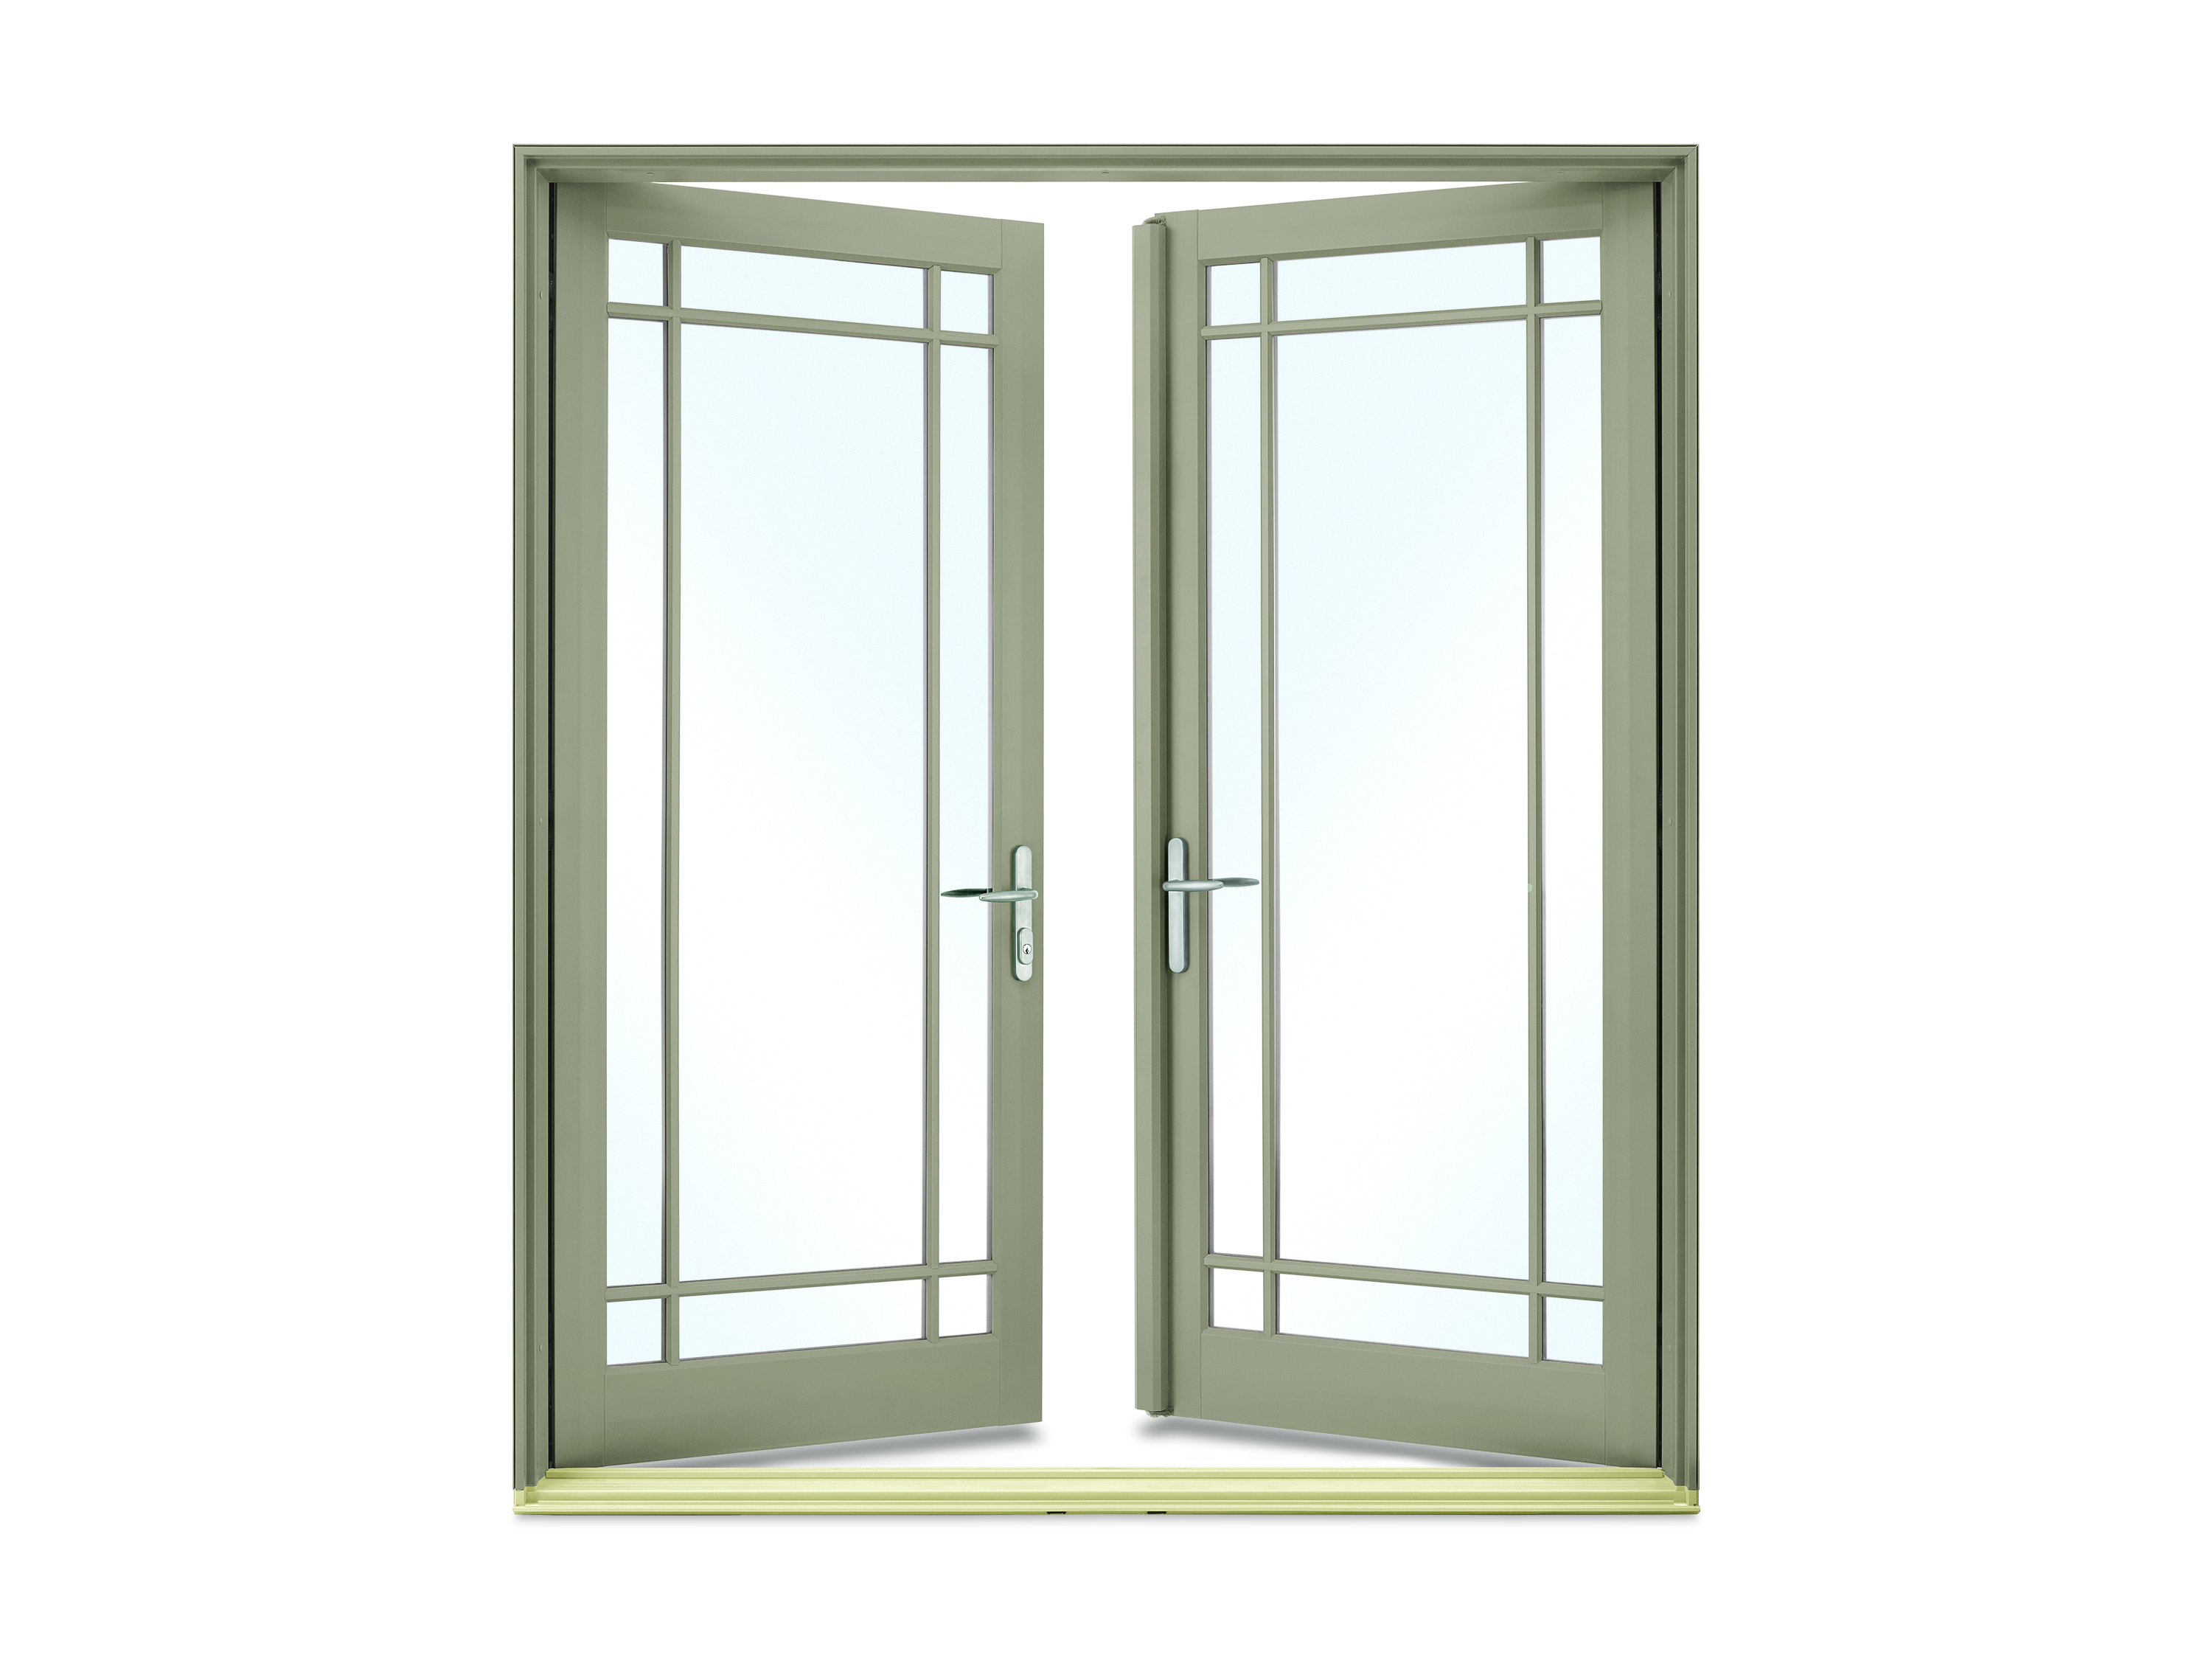 Patio doors lynnrich lynnrich for French door style patio doors